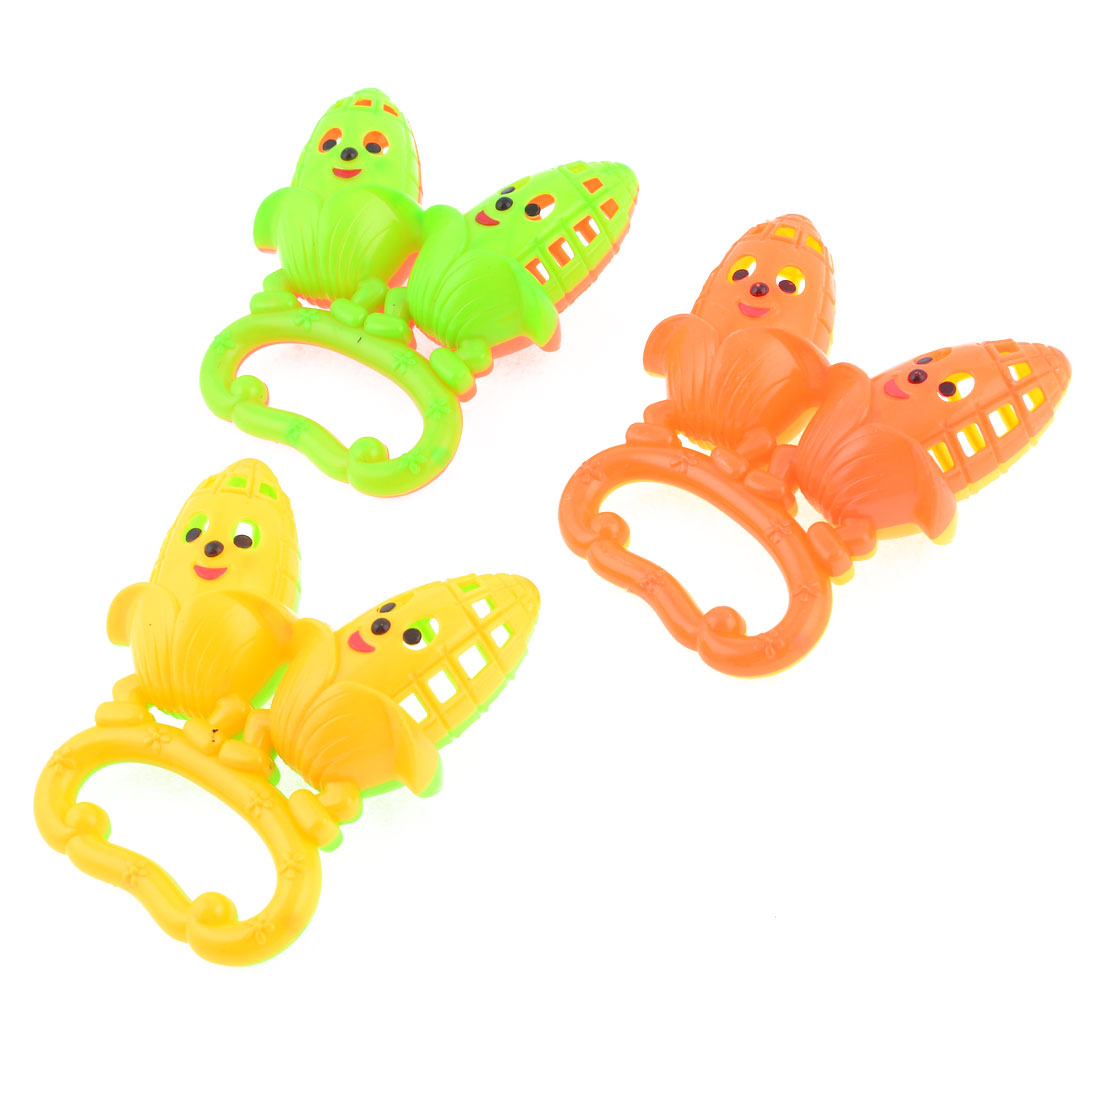 Child 3 Pcs Assorted Color Plastic Corn Shape Rattling Toy